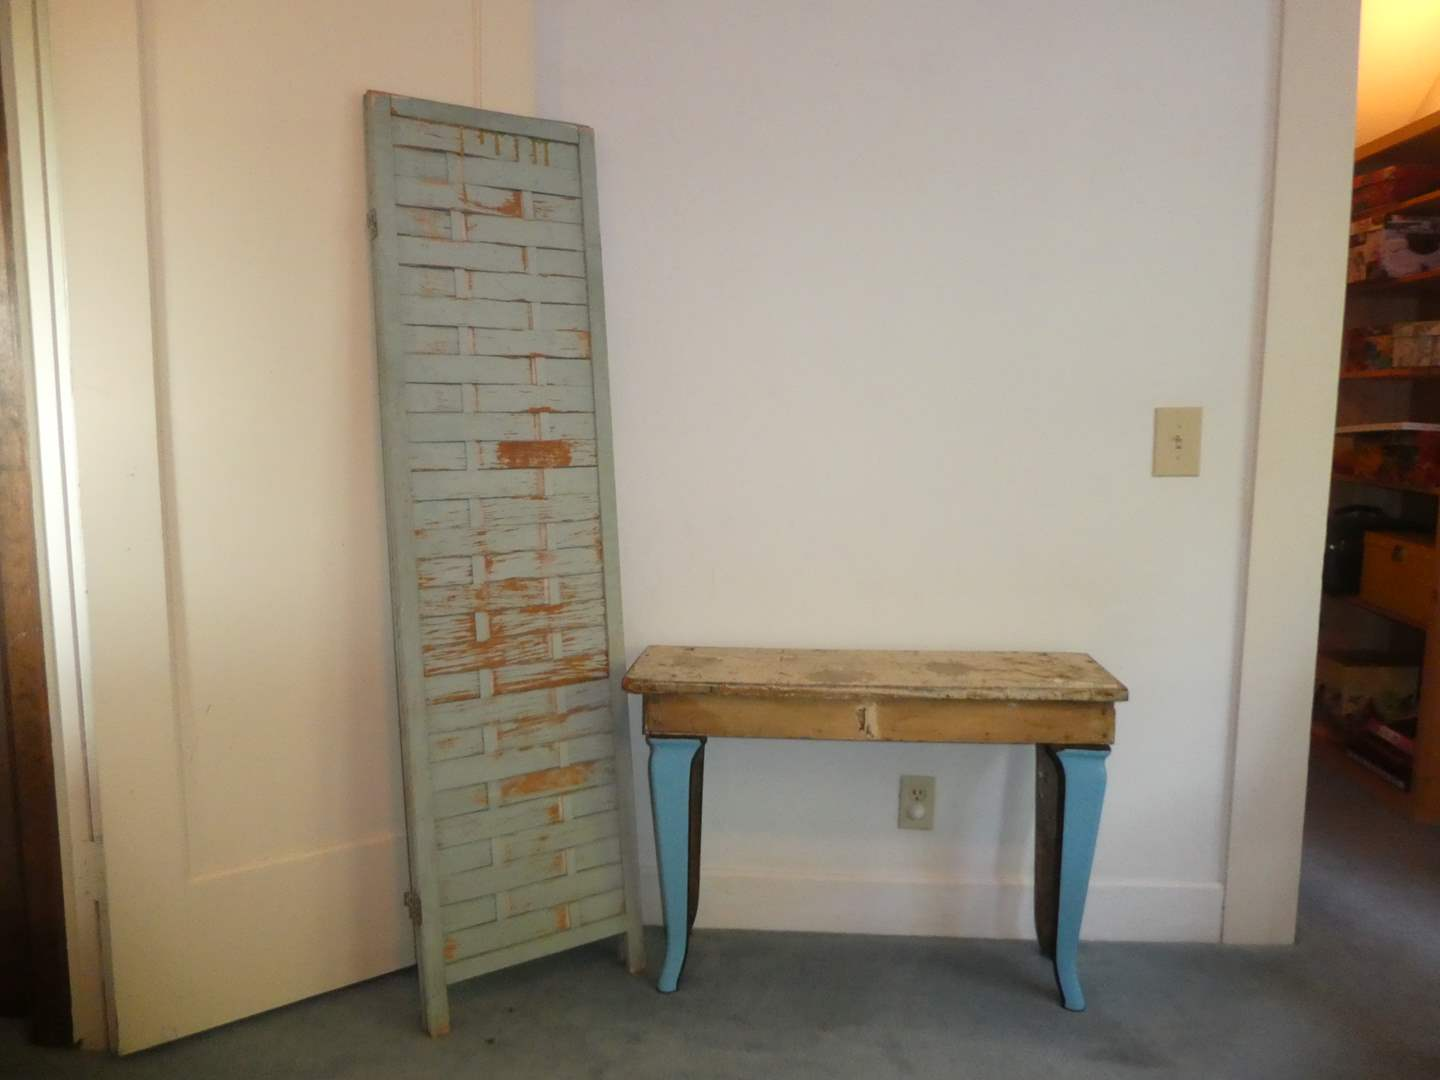 Lot # 1 - Vintage Accent Table w/ Metal Legs and Two Panel Shabby Chic Room Divider